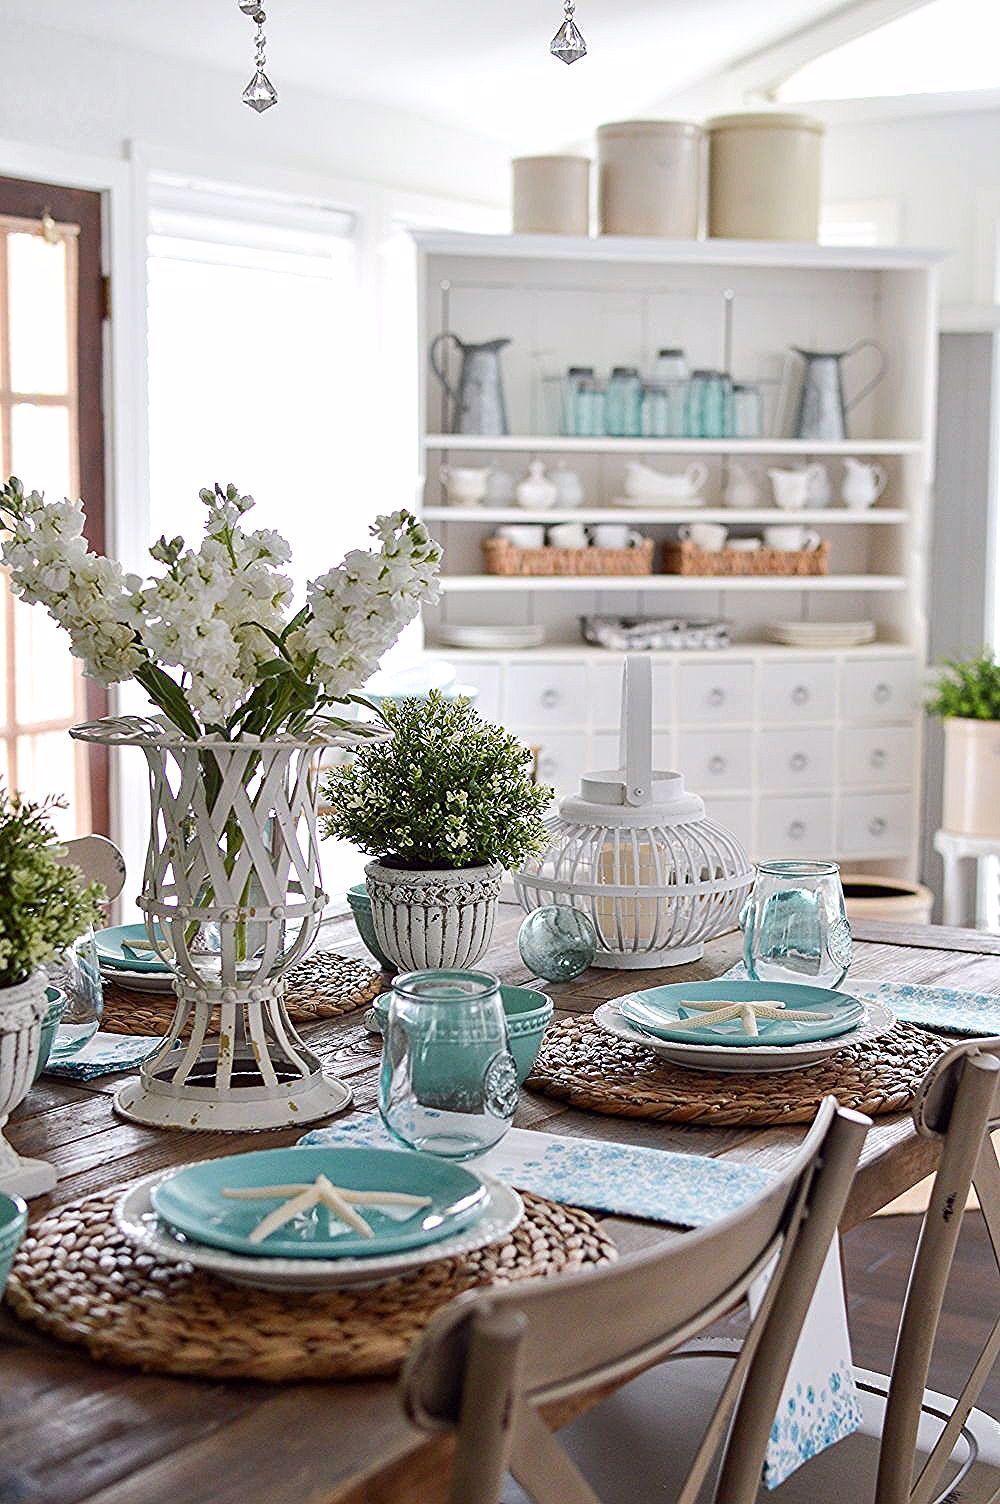 Dining Room Table Centerpiece Ideas In 2020 Dining Room Table